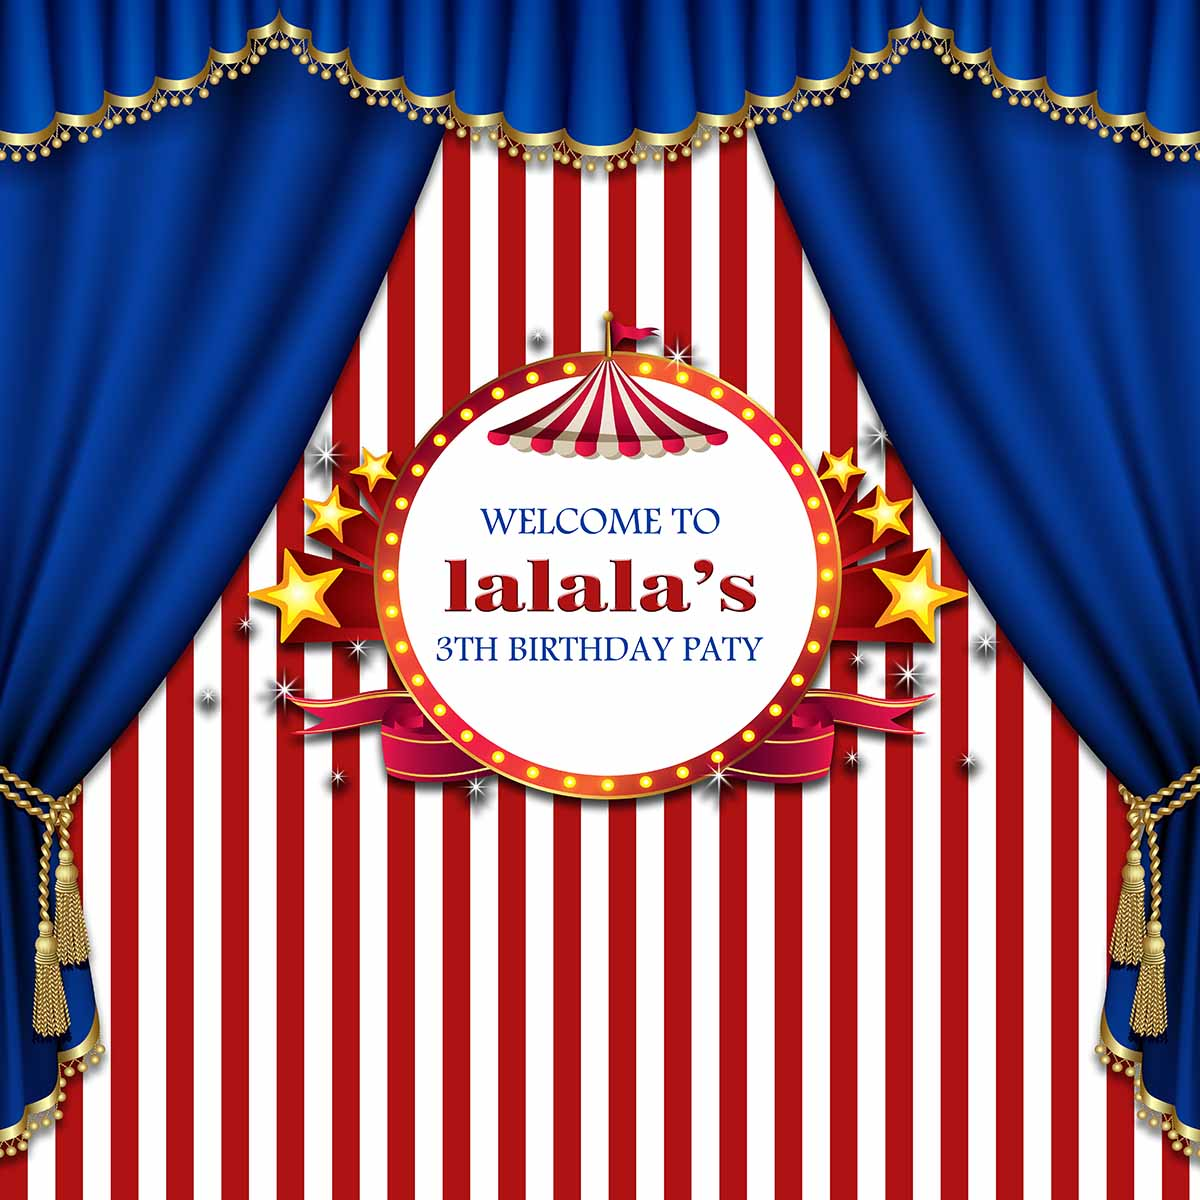 Bl blue stage curtains background - Allenjoy Photography Background Stars Birthday Party Circus Red Stripes Tent And Blue Curtin Backdrop Photography Studio In Background From Consumer